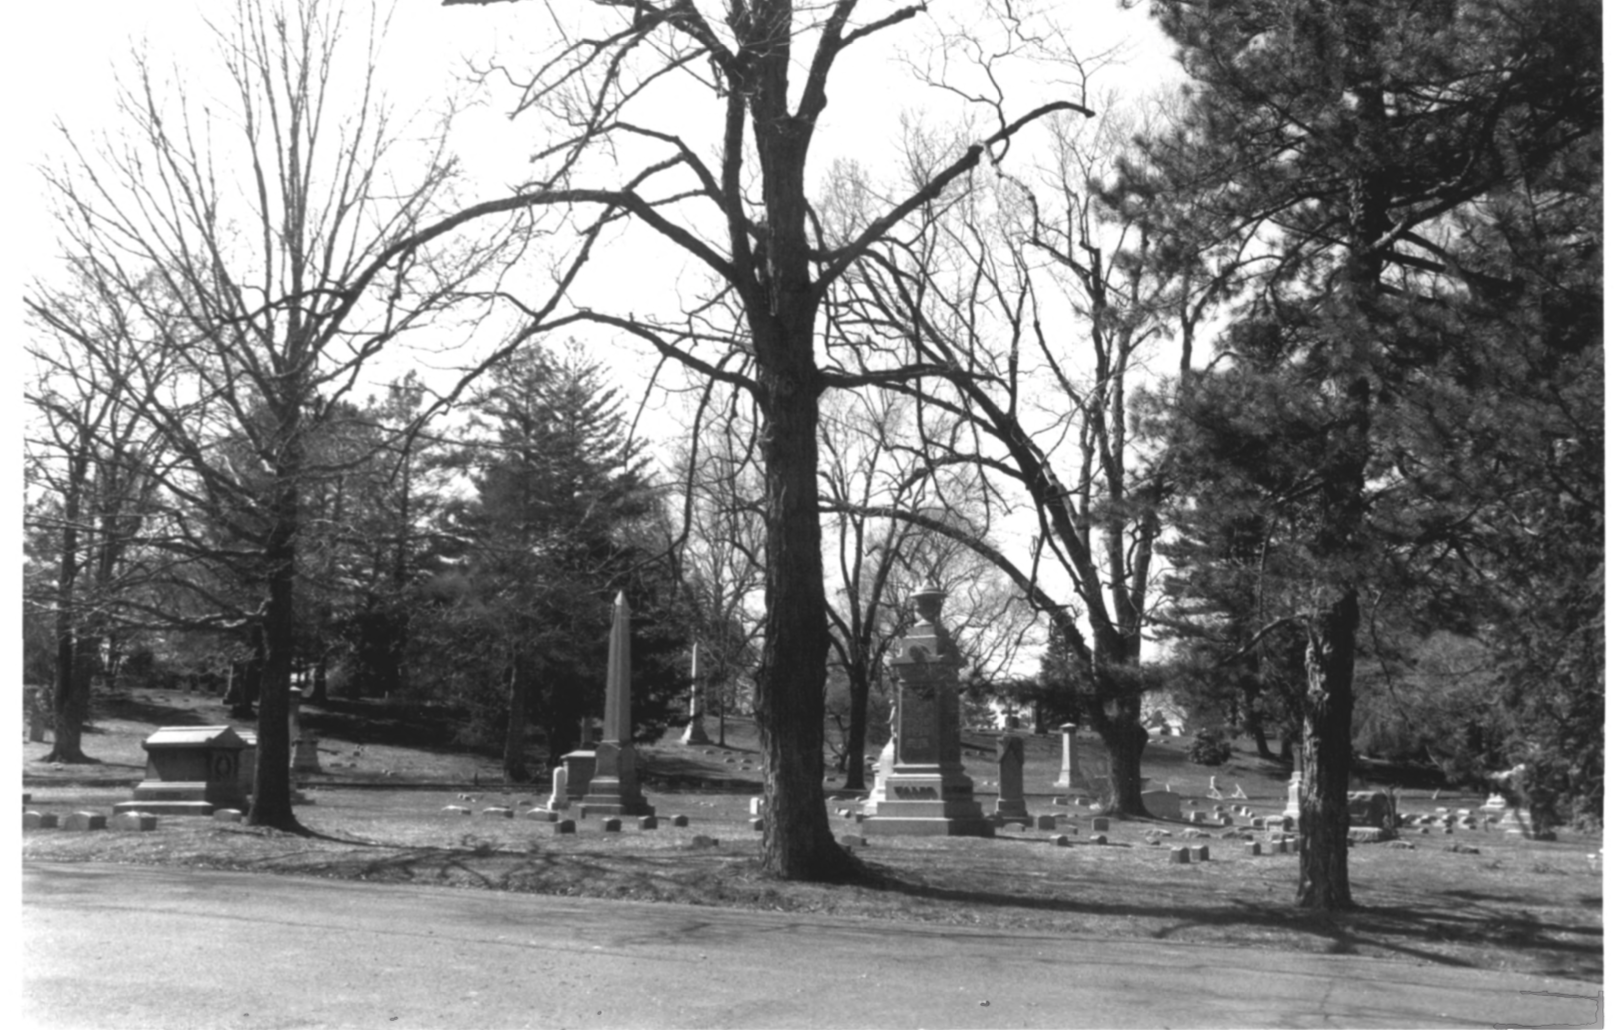 1997 NPS Photo Record of Cedar Hill Cemetary #6